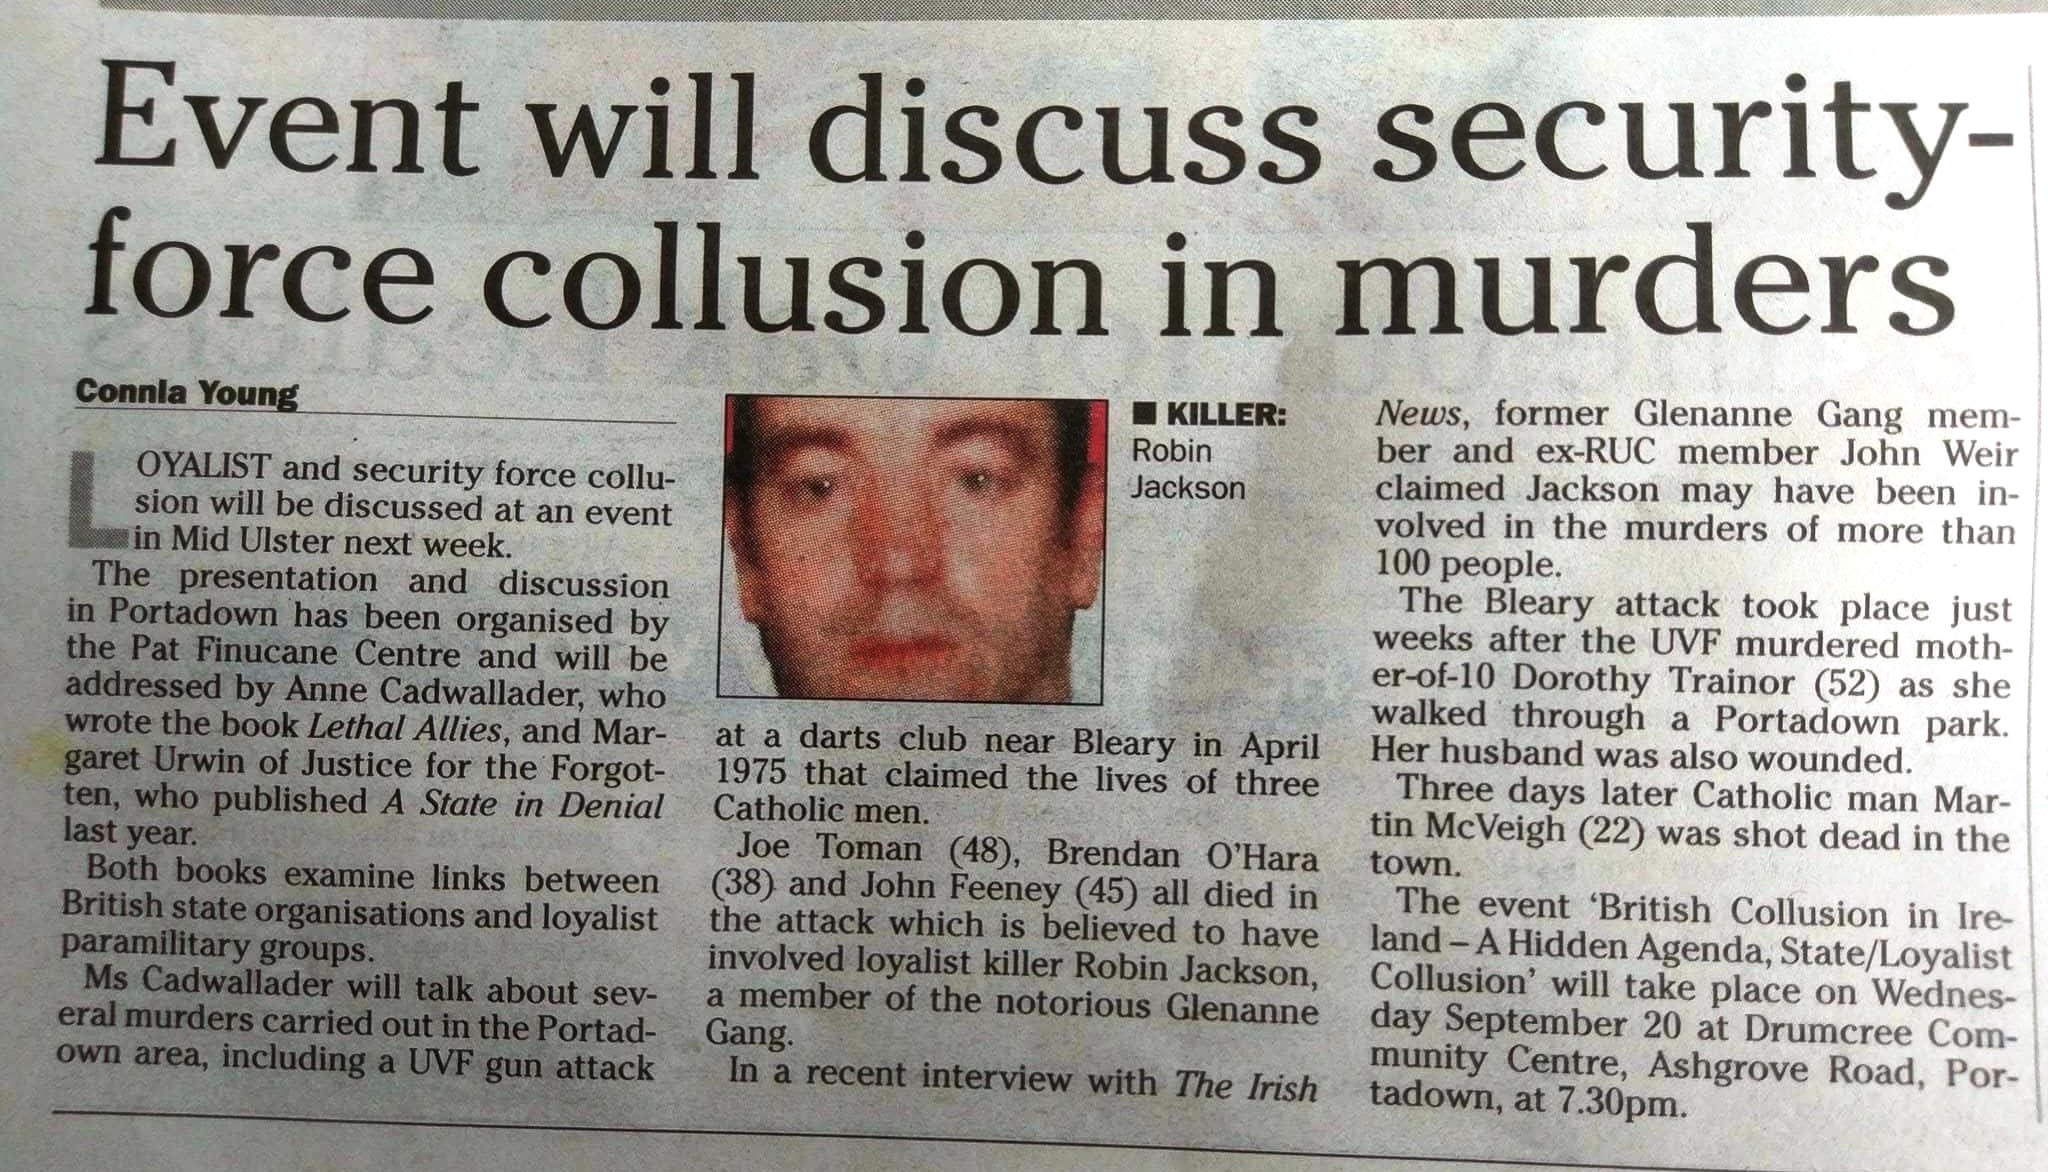 Irish News article giving details of the event